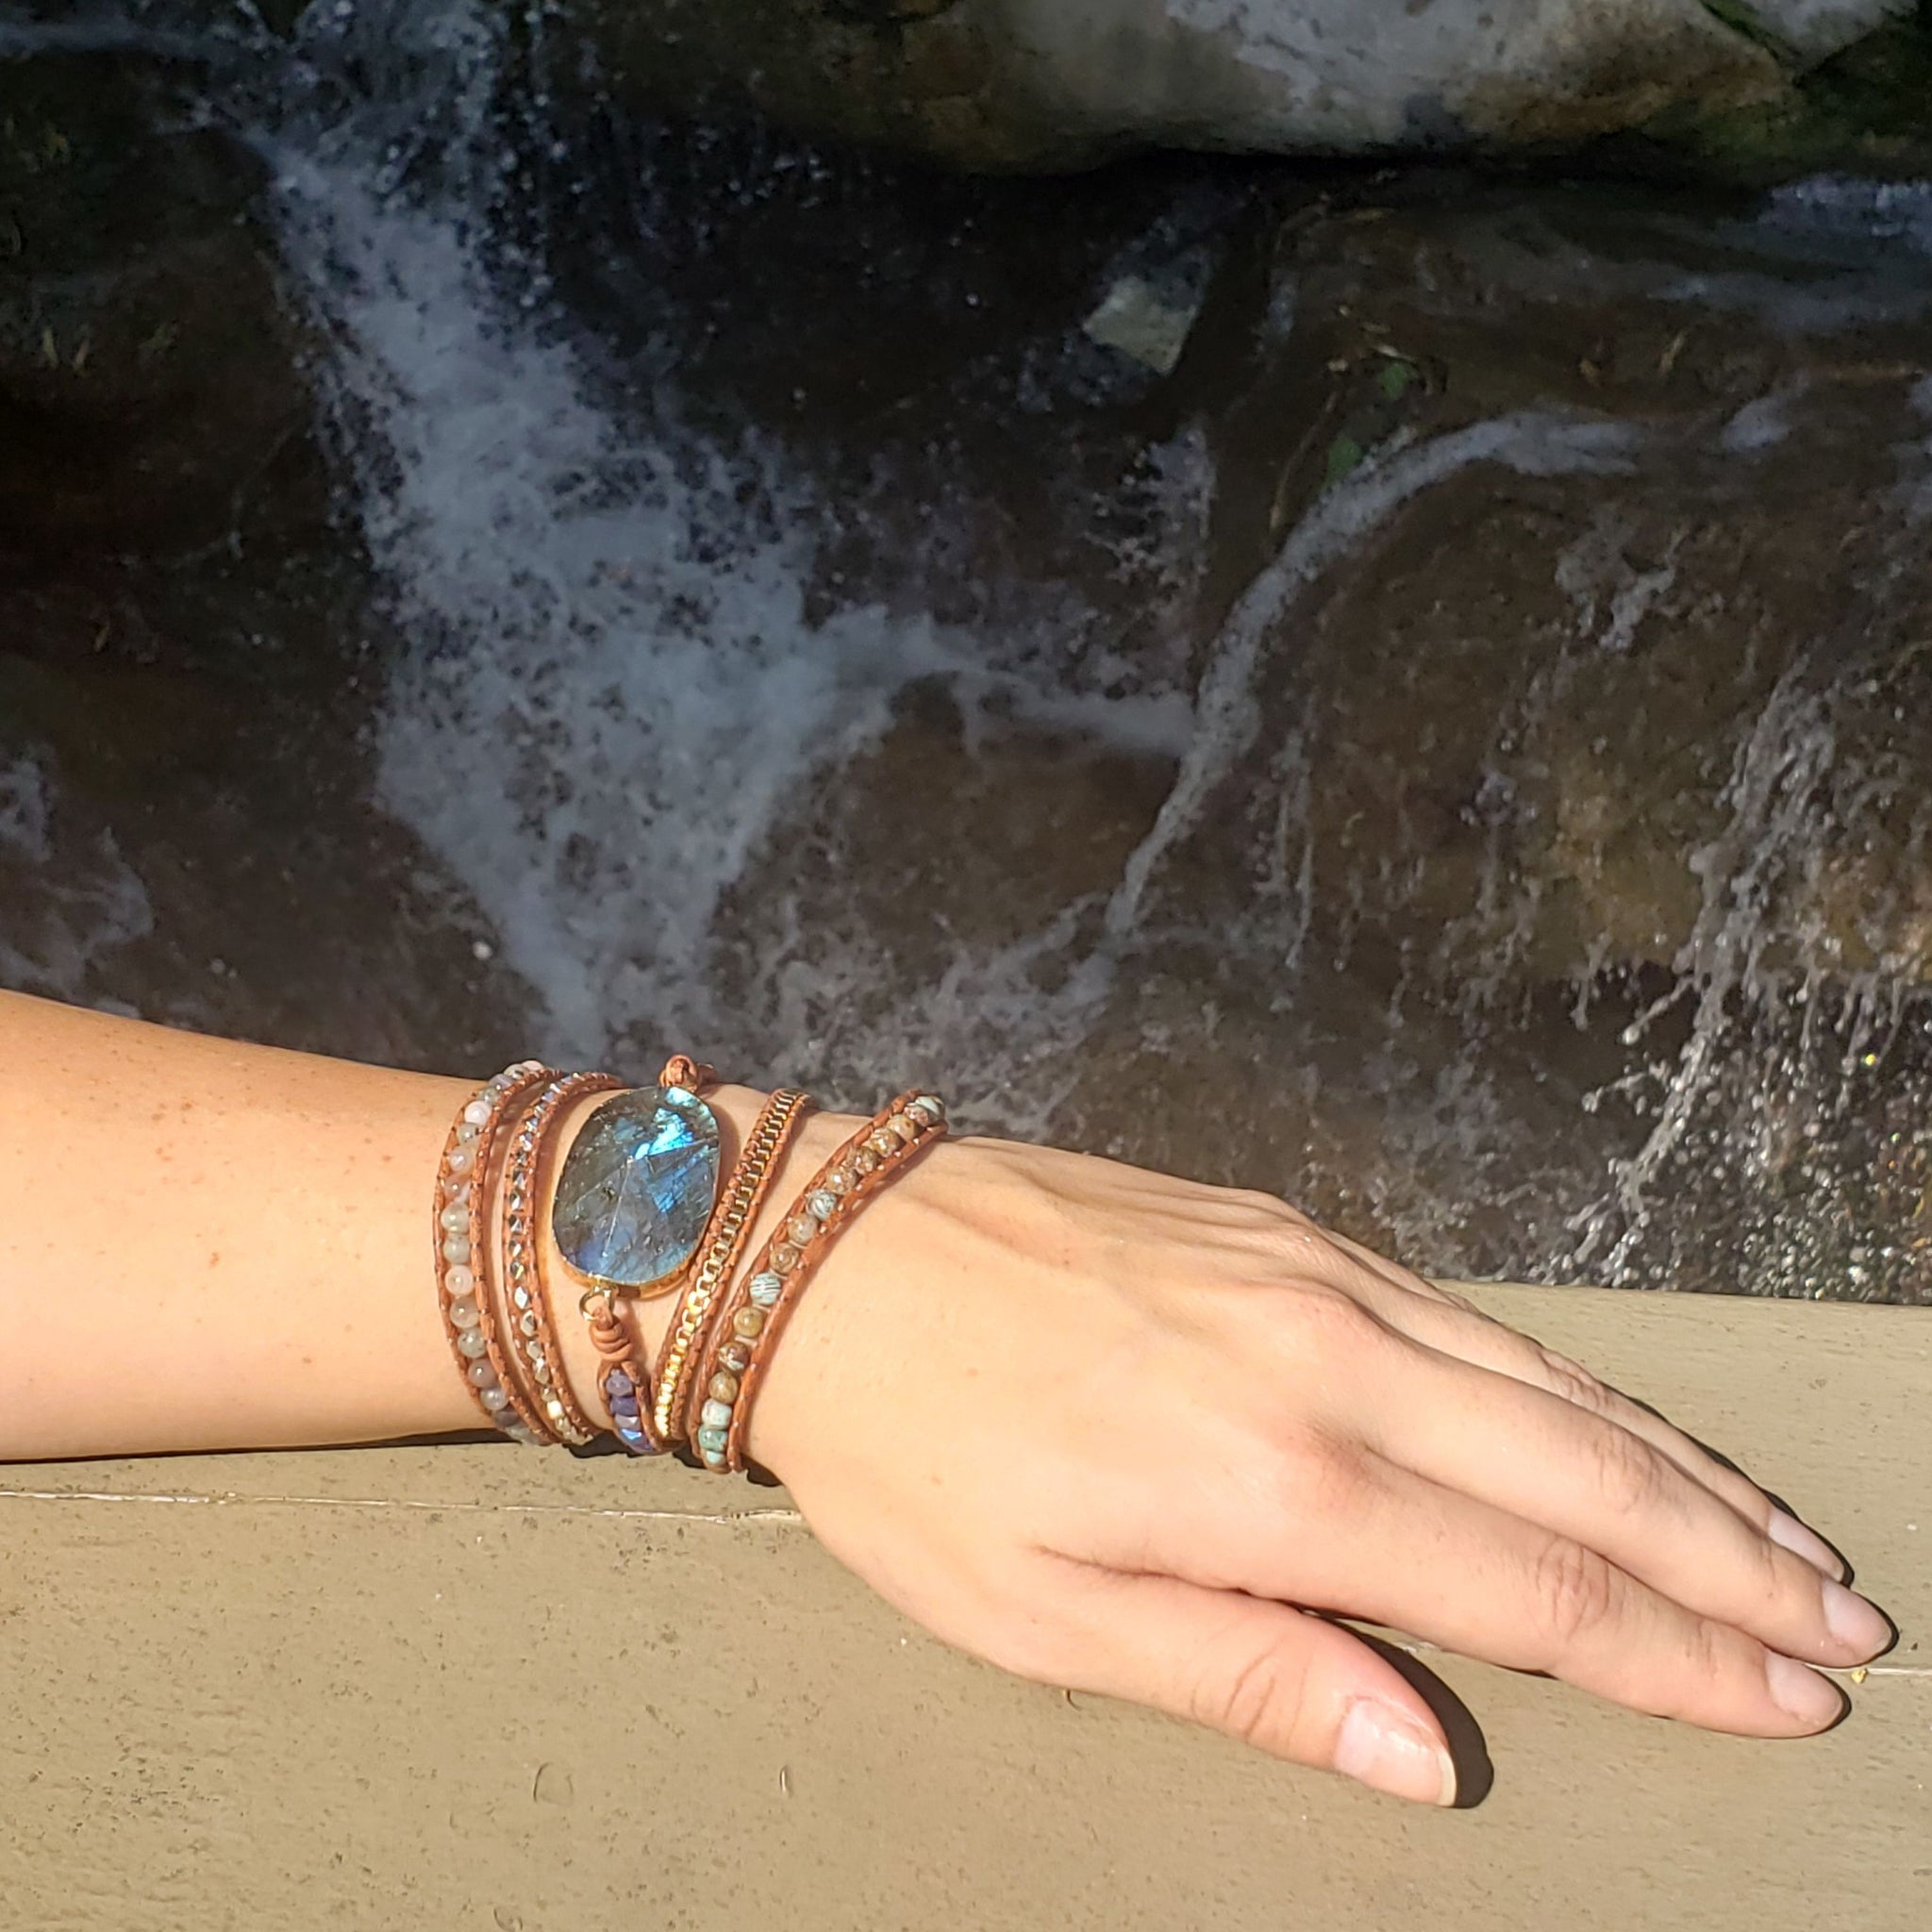 Faceted Labradorite Wrap Mala Bracelet - Mala Beads Meditation Accessories and Yoga Jewelry by Tiny Devotions